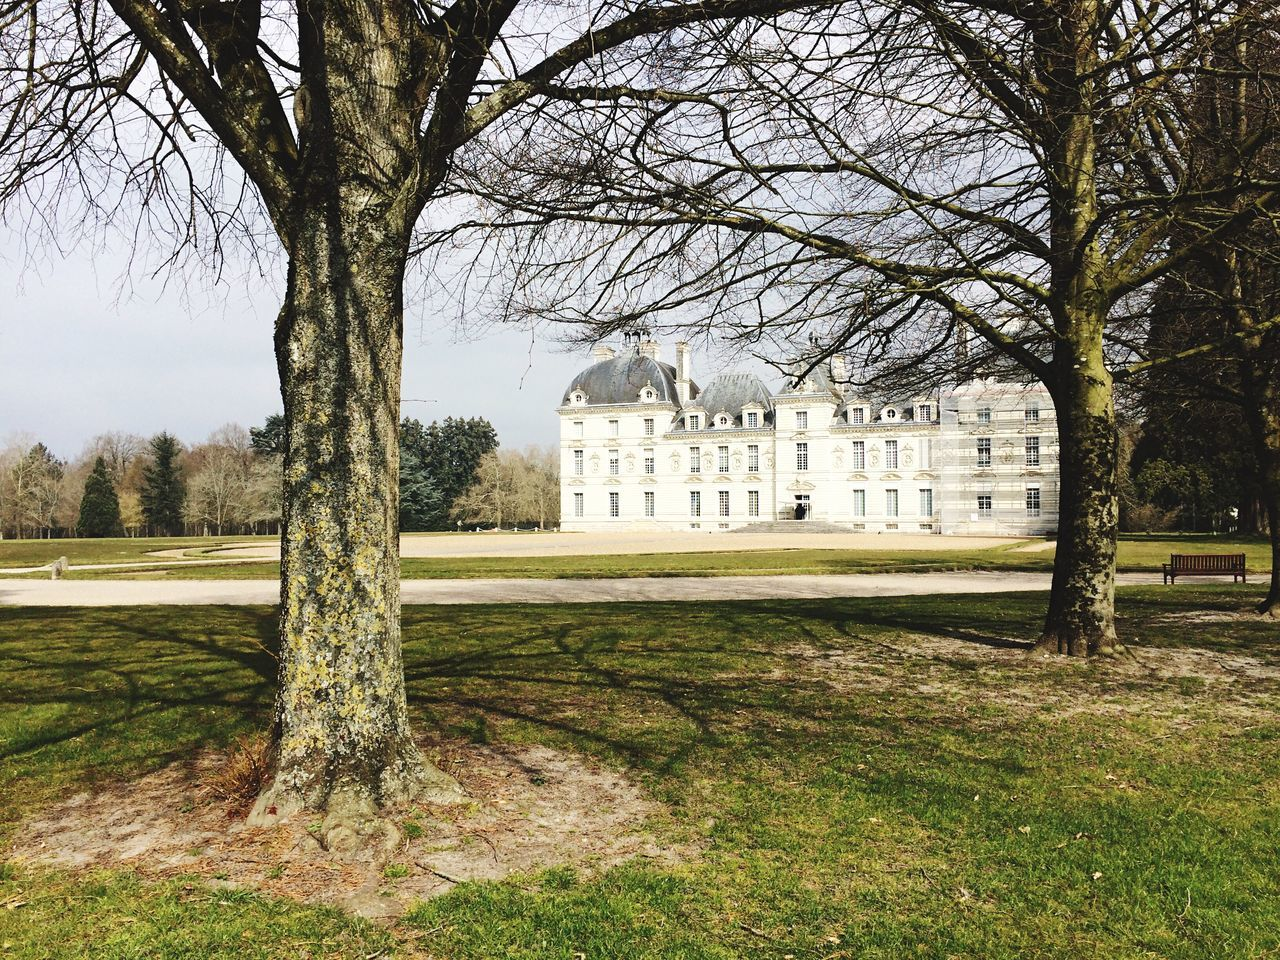 tree, built structure, architecture, building exterior, bare tree, history, day, no people, grass, branch, outdoors, nature